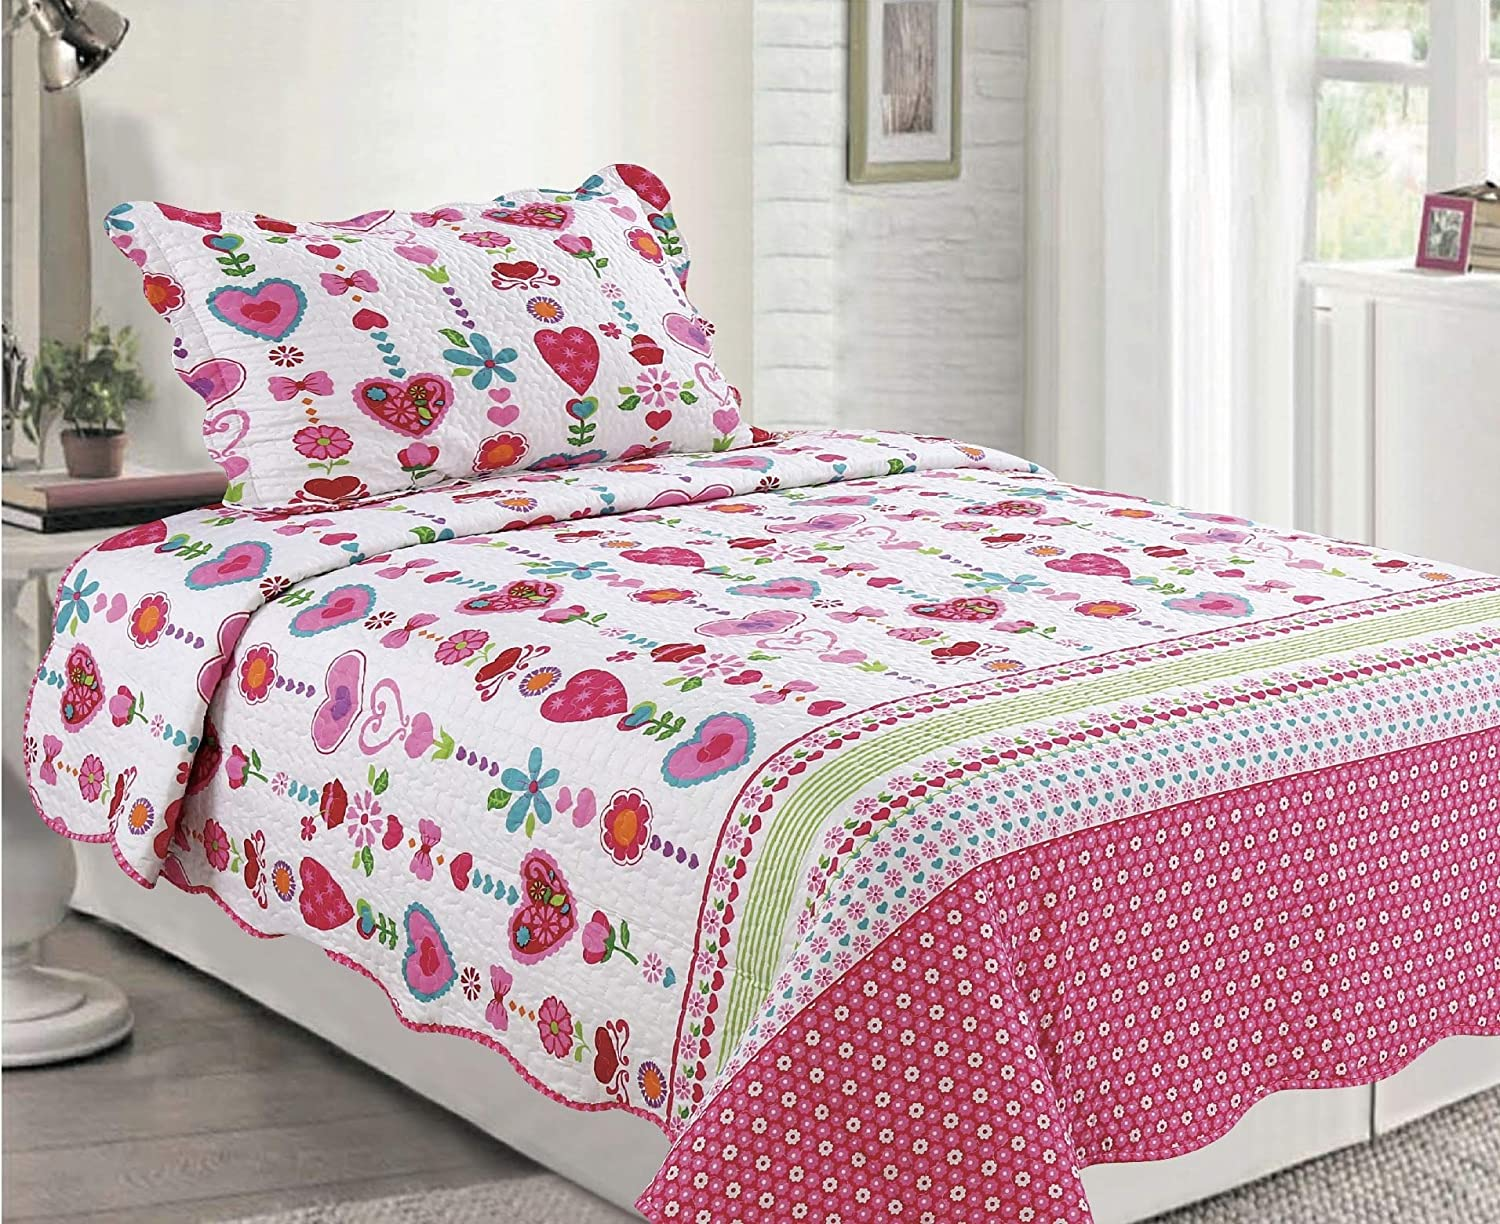 Elegant Home Decor Cute Girls Multicolor White Pink Green Blue Floral with Hearts Design 2 Piece Printed Coverlet Bedspread Quilt for Kids Teens/Girls Twin Size # 143